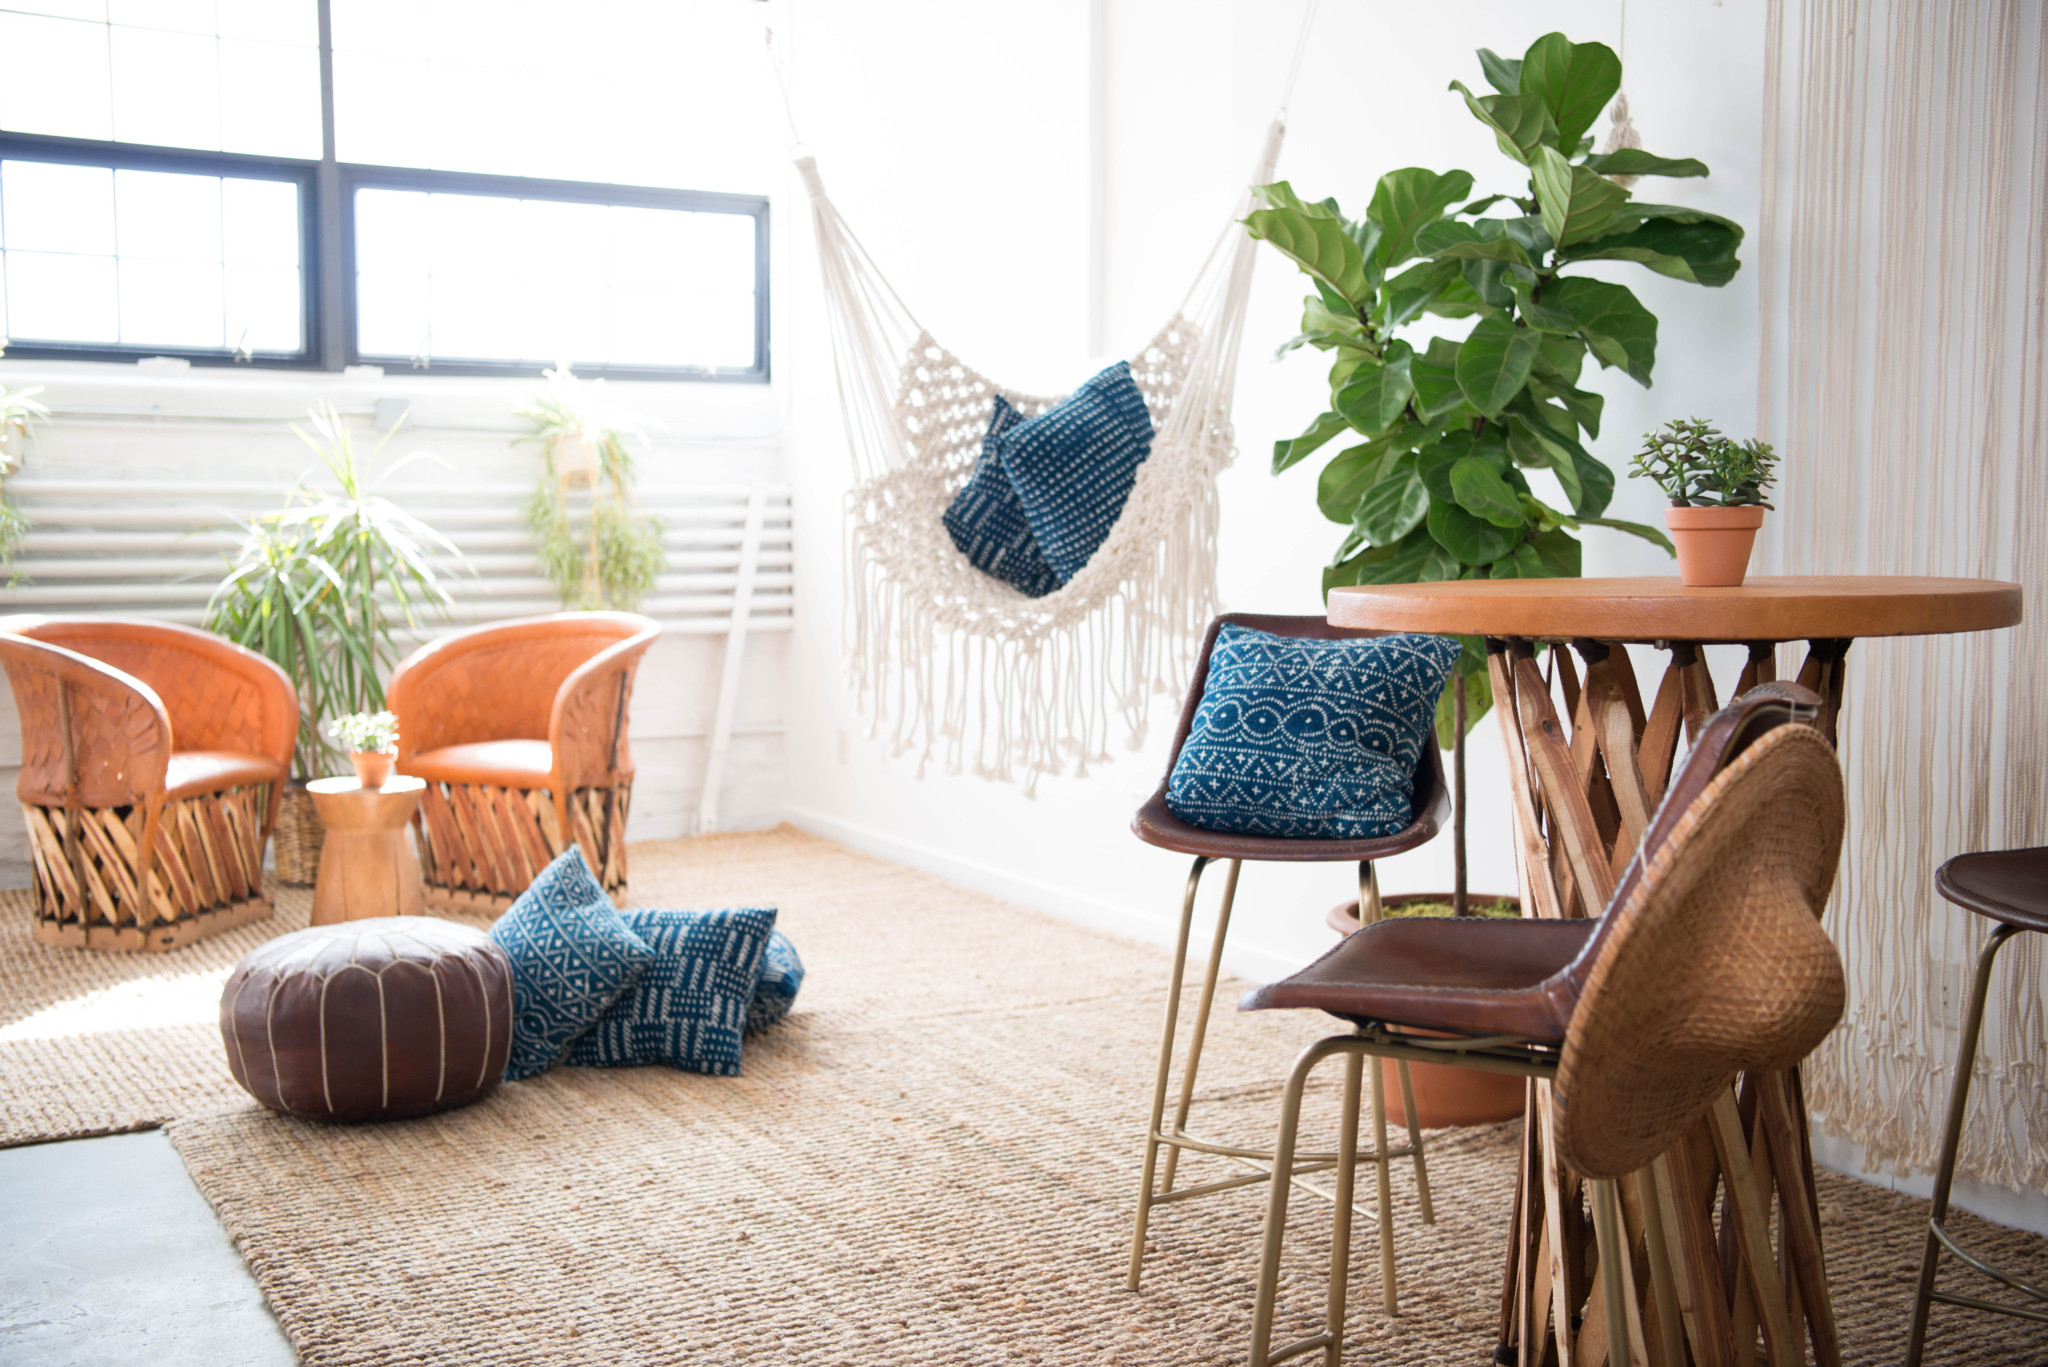 home unique ideas improvement awesome decor stunning room images idea hammock living with design view